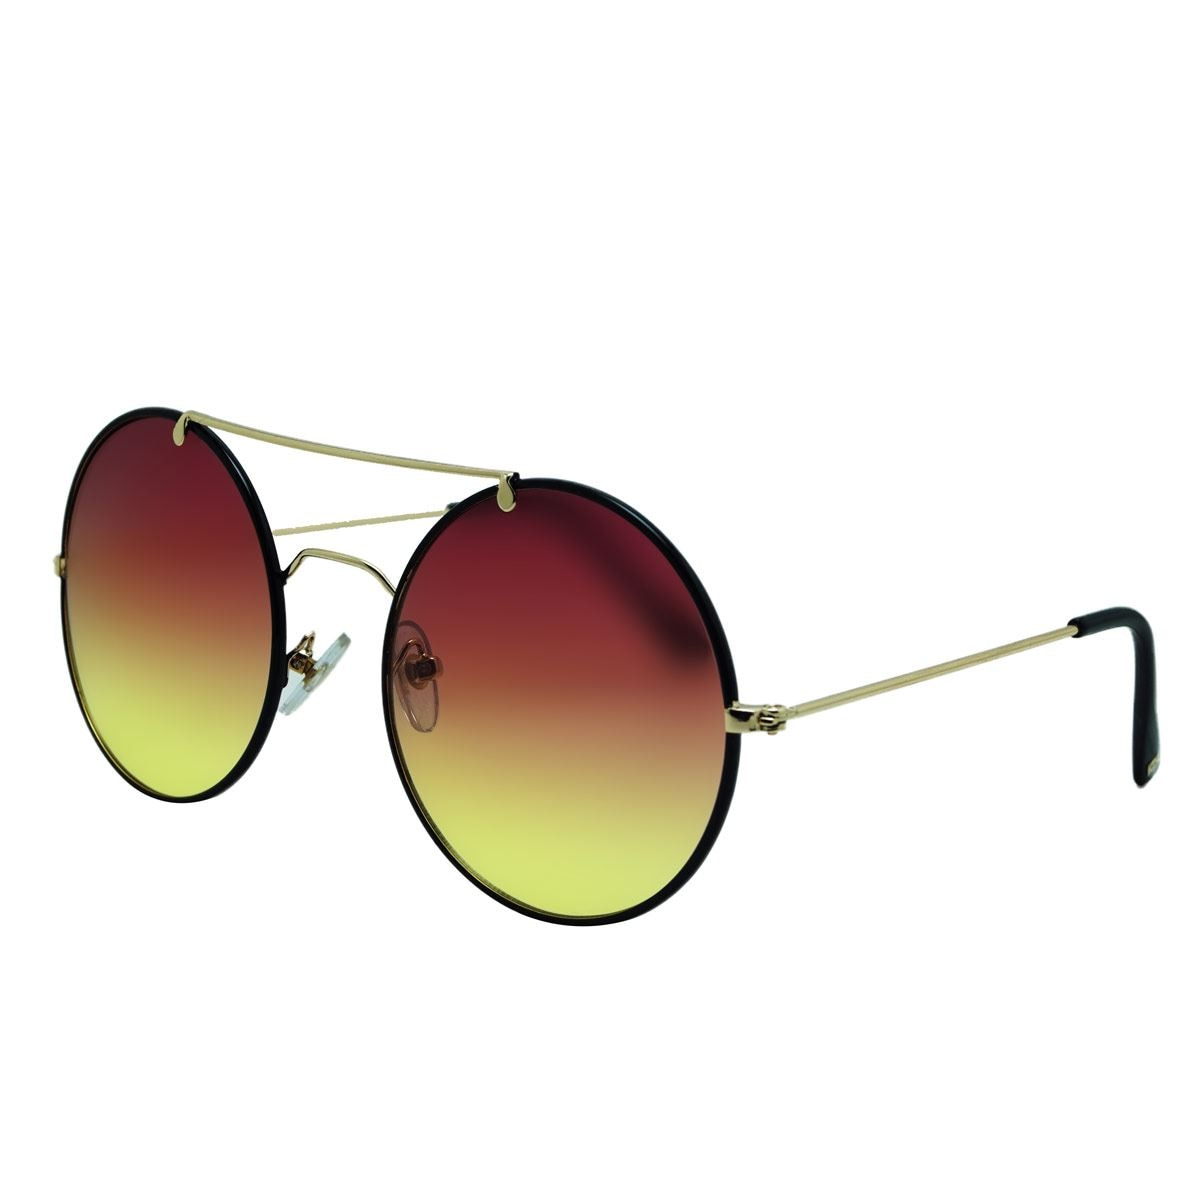 Lentes Solares Foster Grant Tinted IV Negro